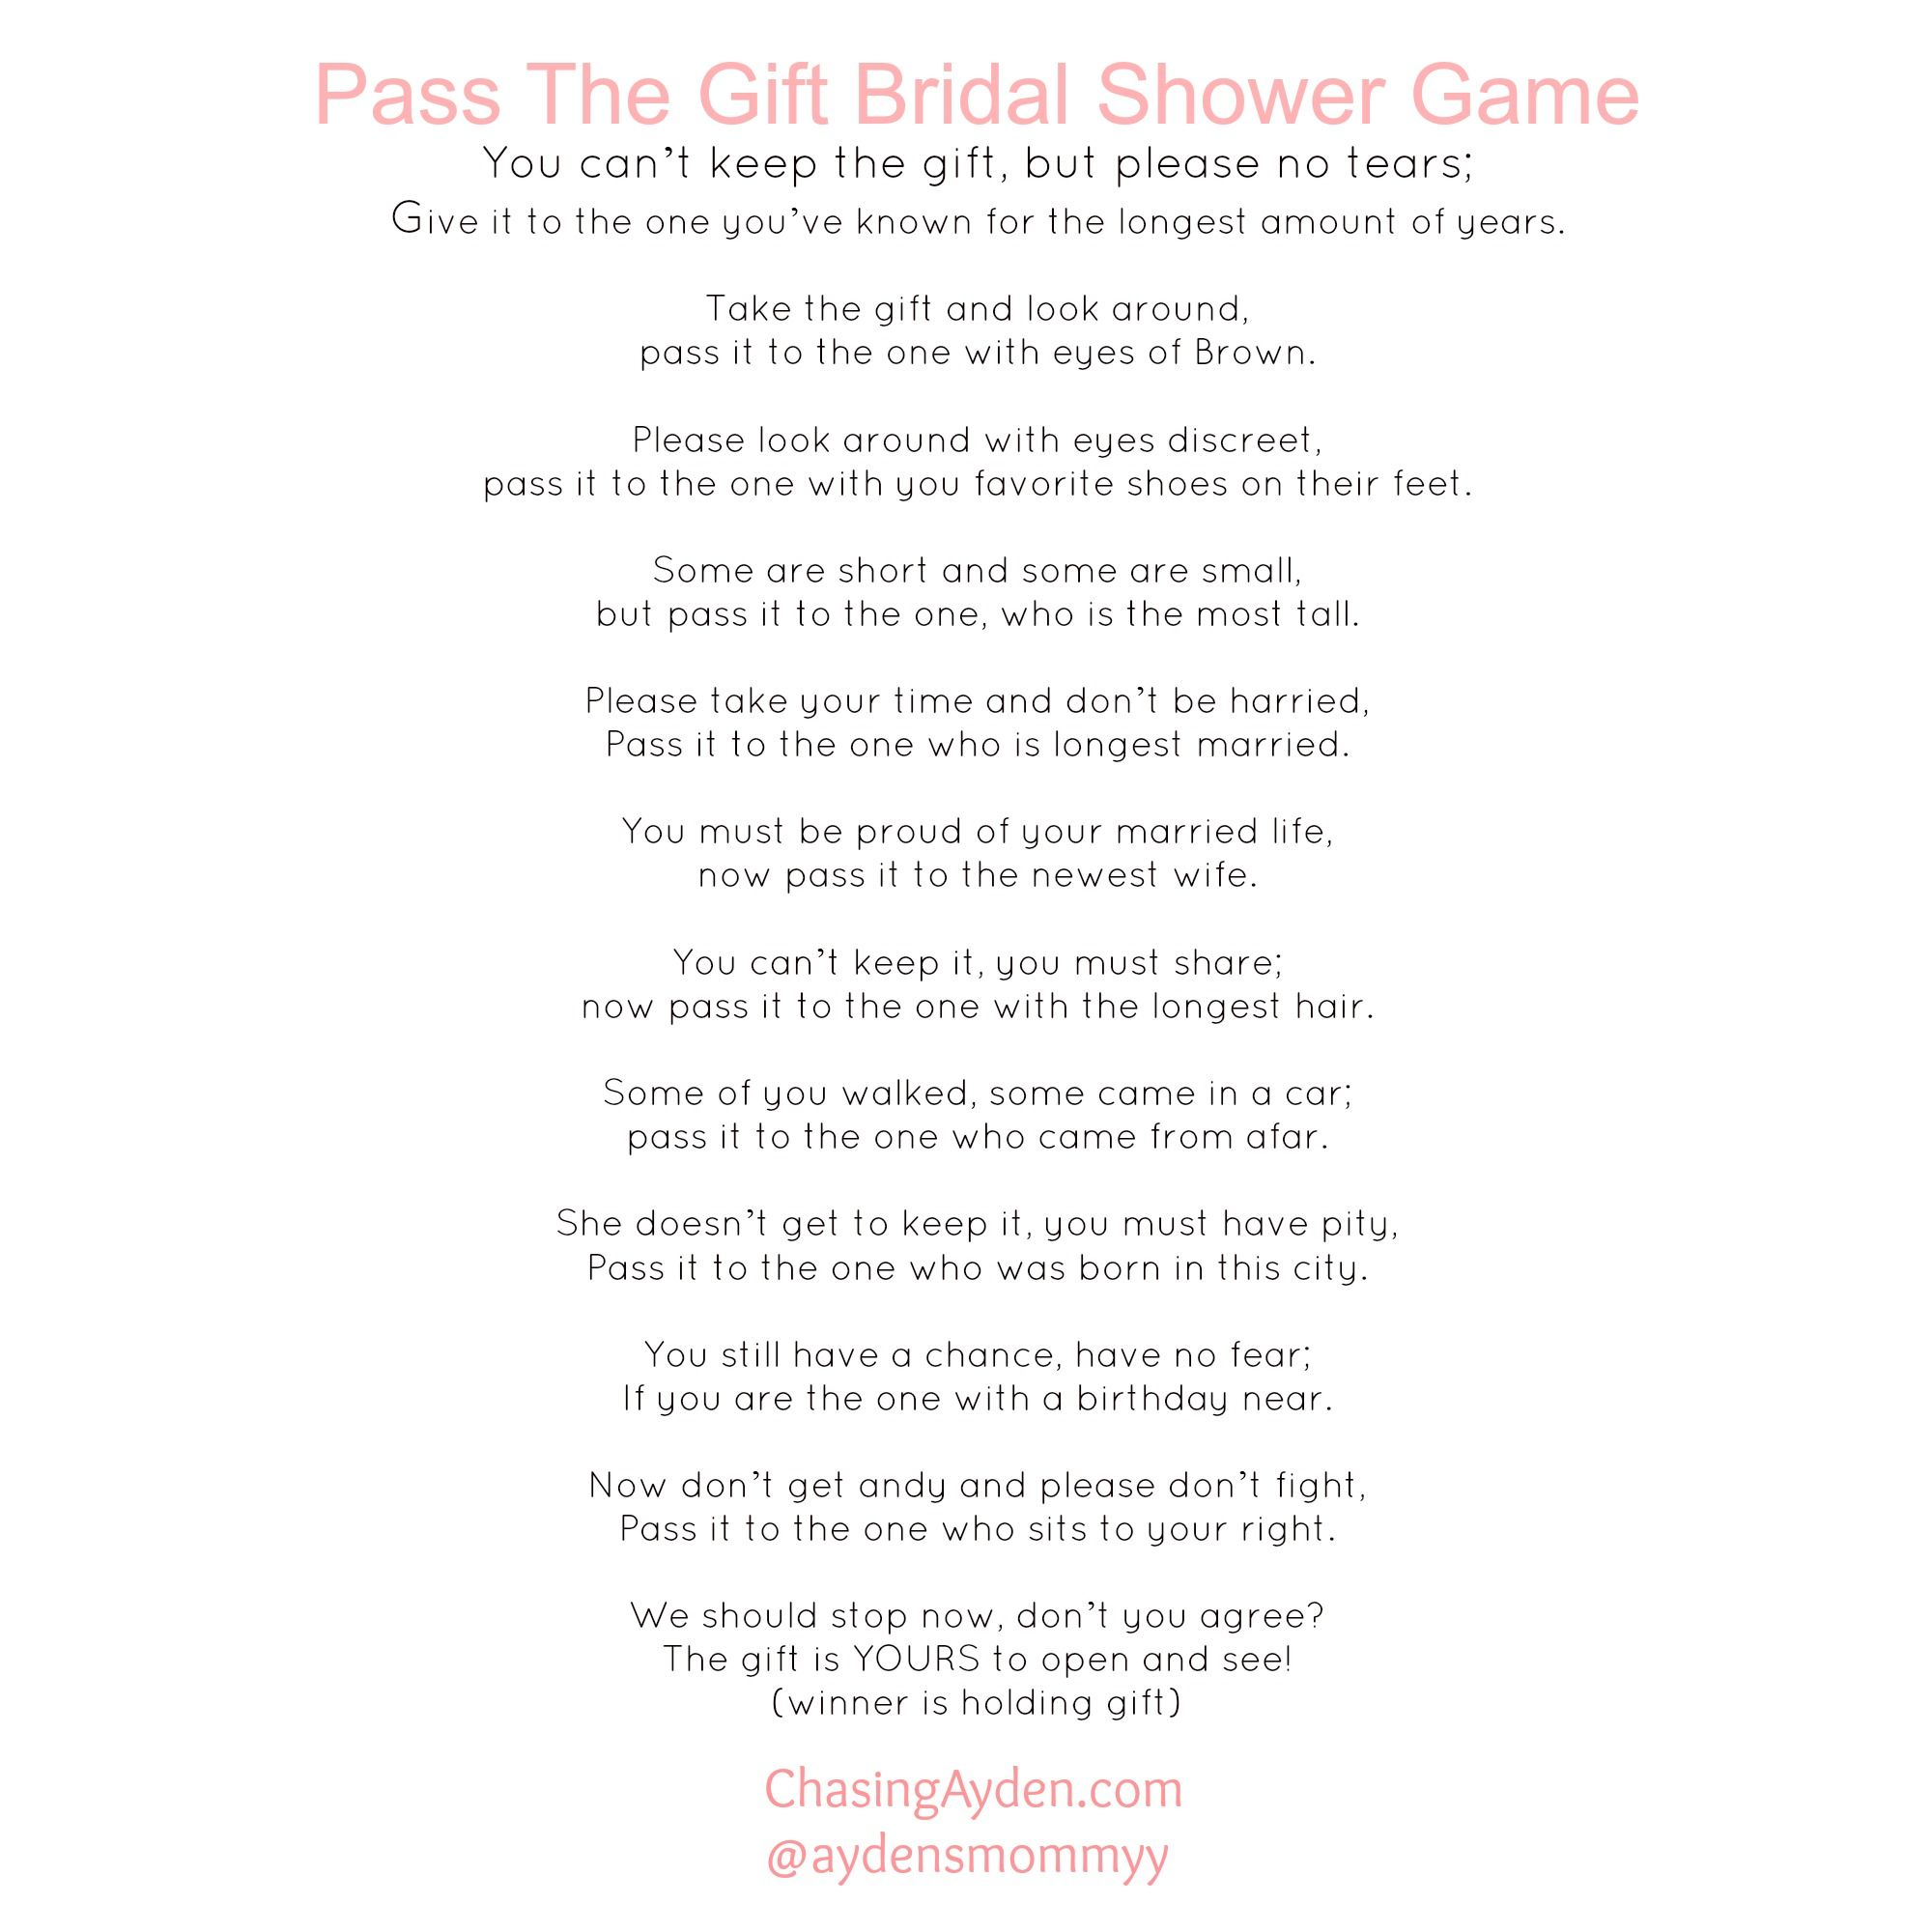 Modern Pass The Gift Bridal Shower Game Free Printable Http:/chasingayden regarding Pass The Gift Baby Shower Game